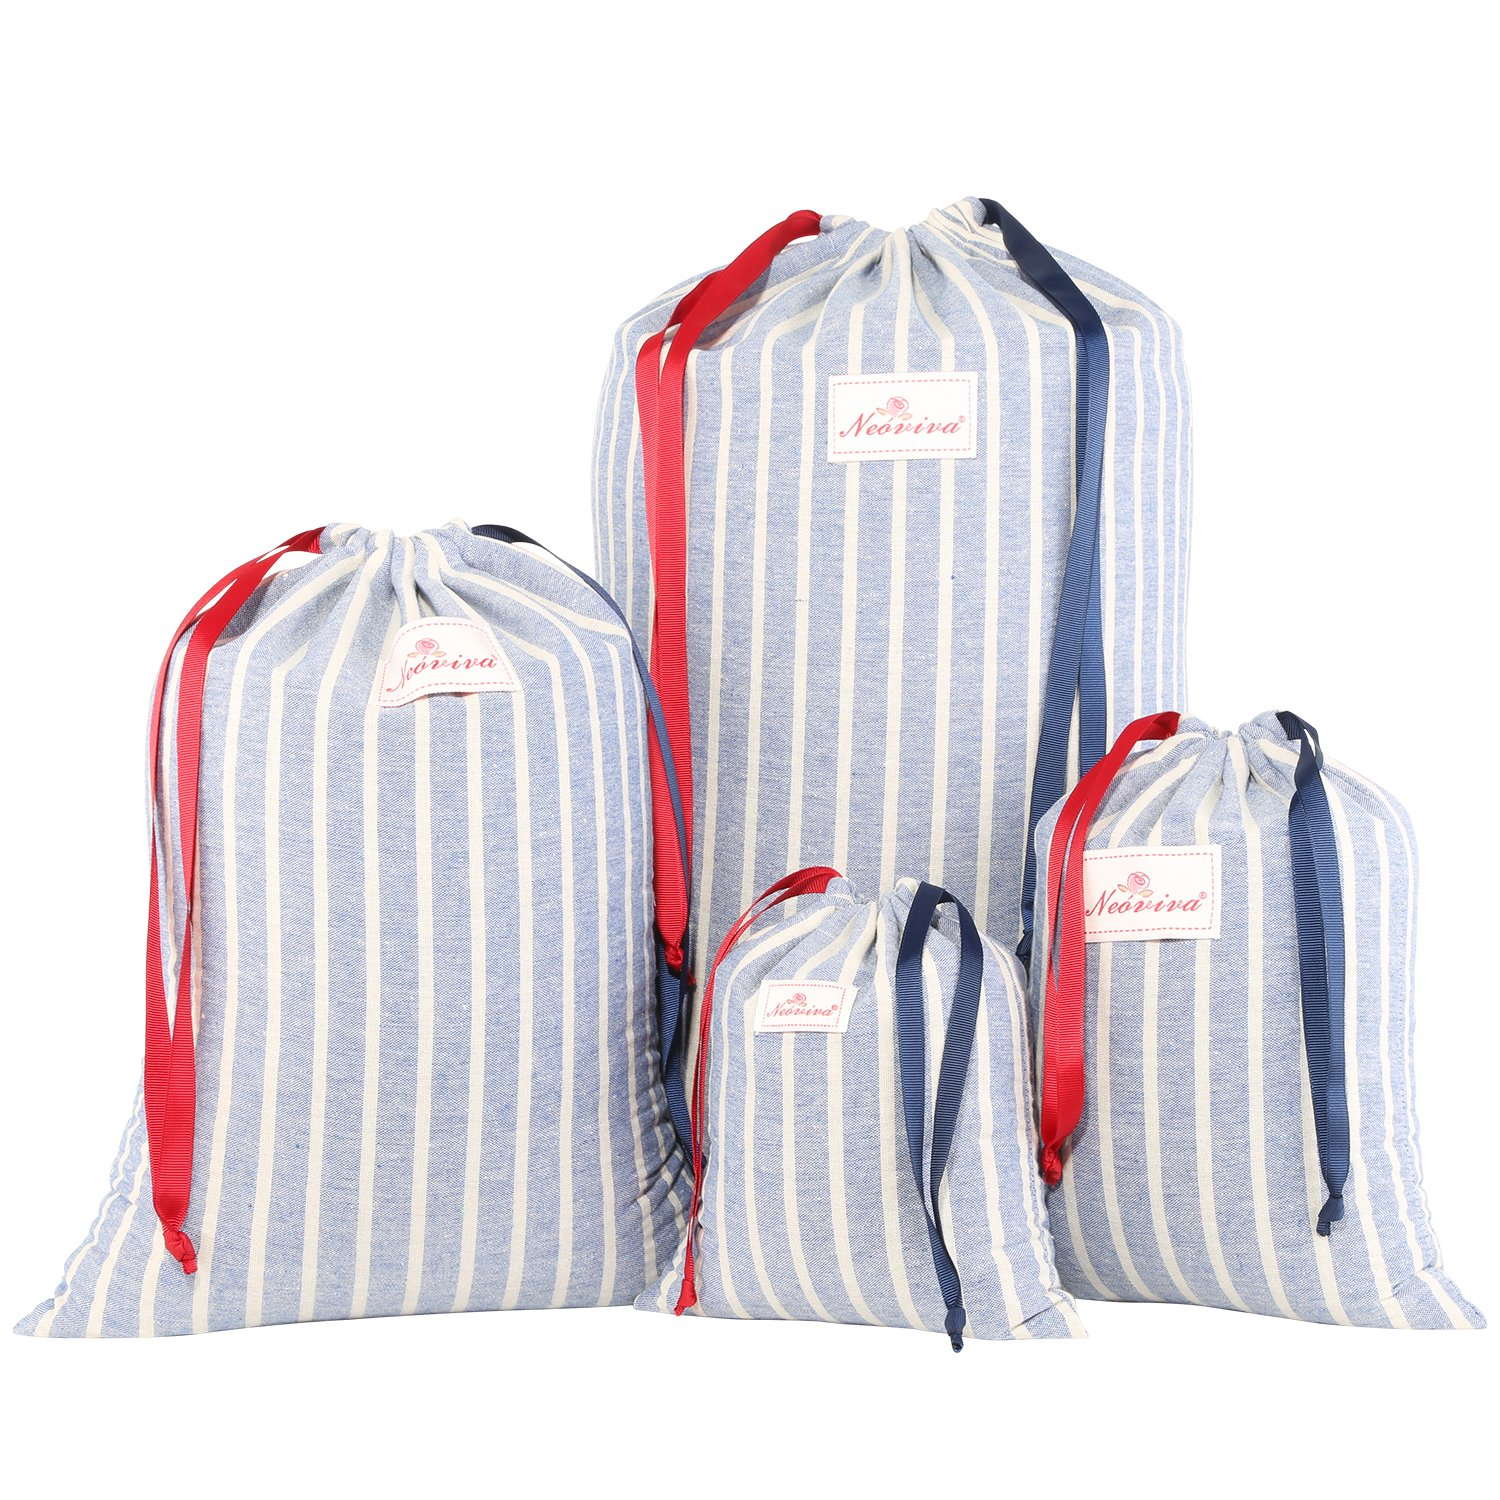 Neoviva Cotton Denim Drawstring Storage Bags for Home and Travel Organization, Set of 4 in Different Sizes, Chalk Striped Cosmic Sky